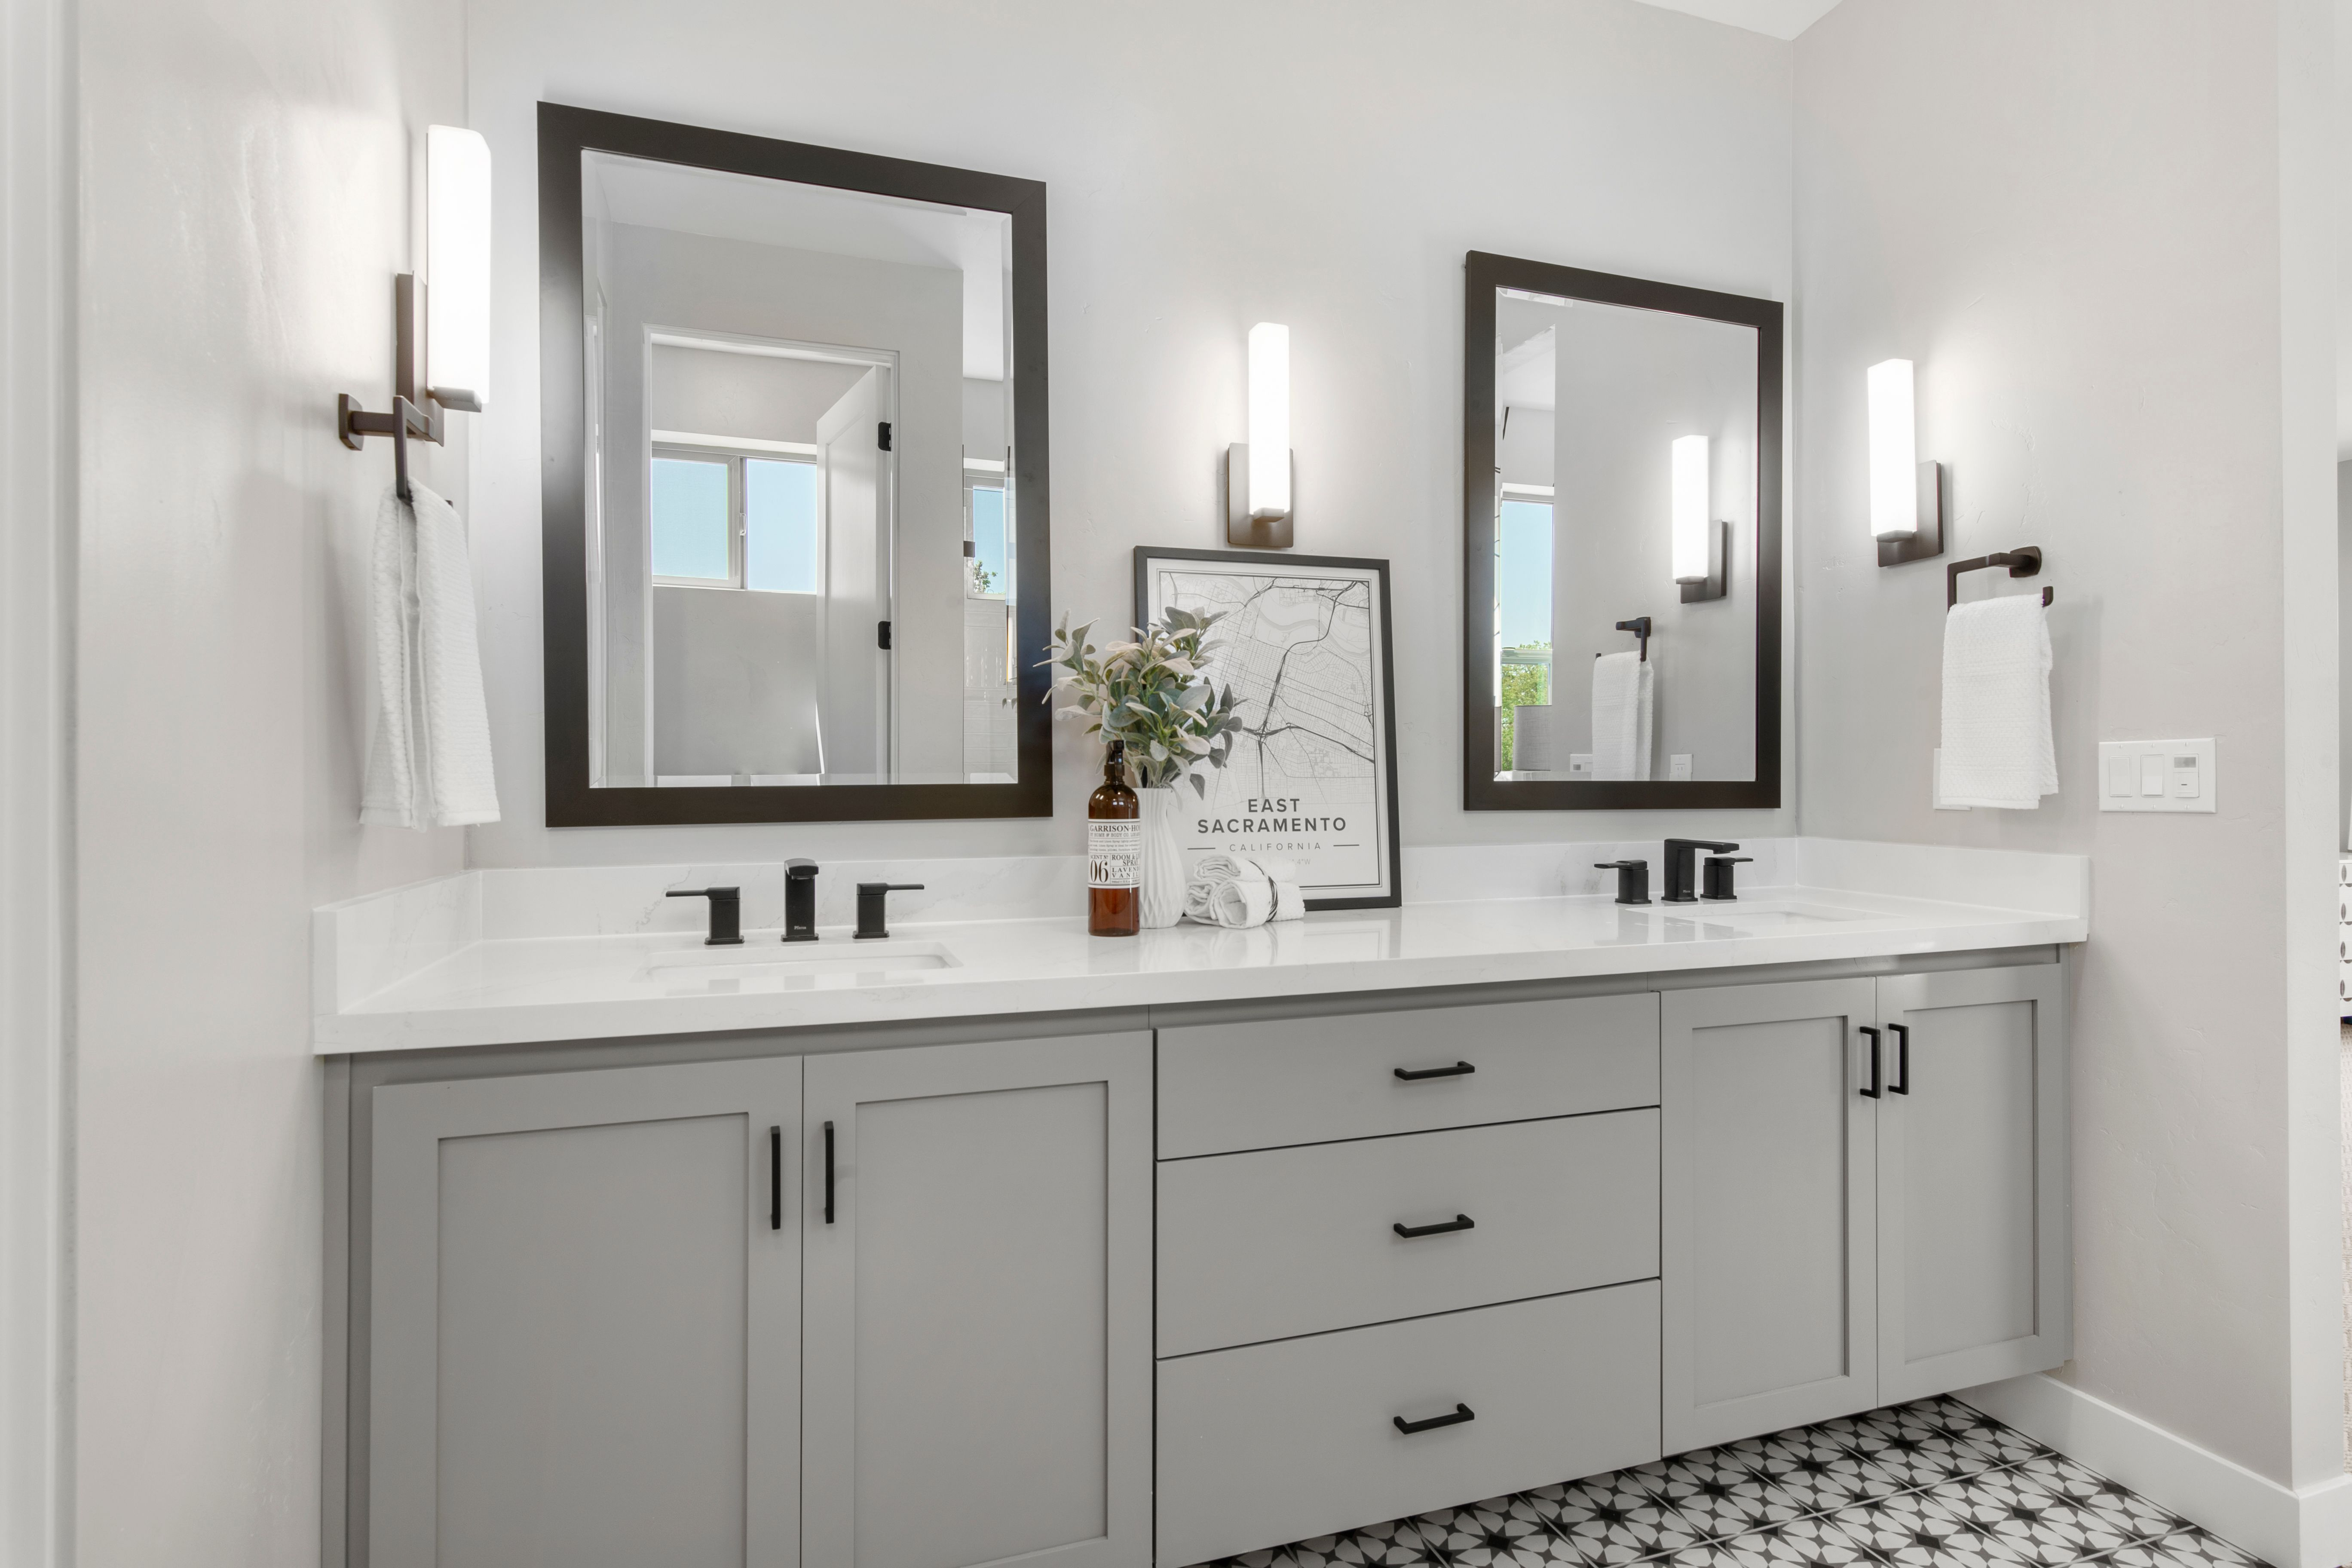 Bathroom featured in the Plan B By Next Generation Capital  in Sacramento, CA